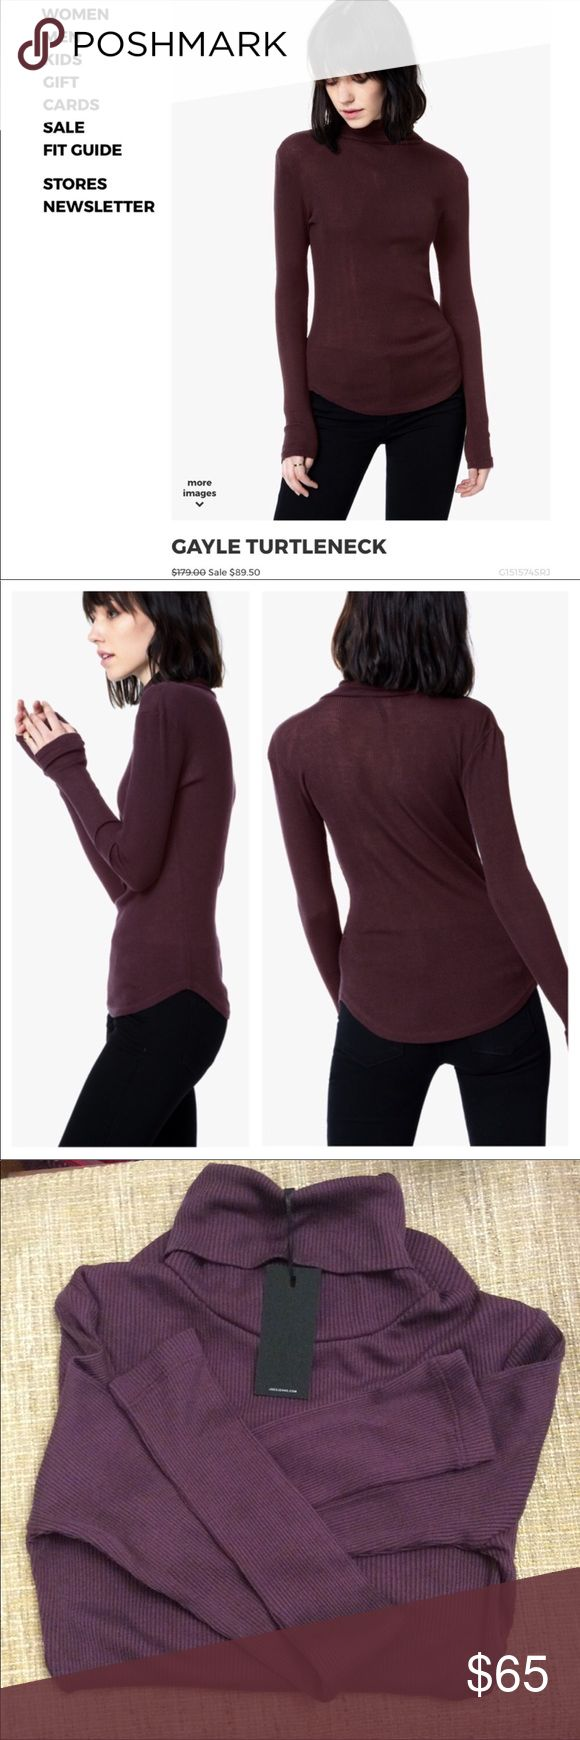 Joe's Jeans Silk Turtleneck So soft and the perfect addition to ur fall/winter addition. This is still selling on Nordstrom's website at 180. Gorgeous color and a cozy feel. Beautiful wine color Joe's Jeans Tops Tees - Long Sleeve